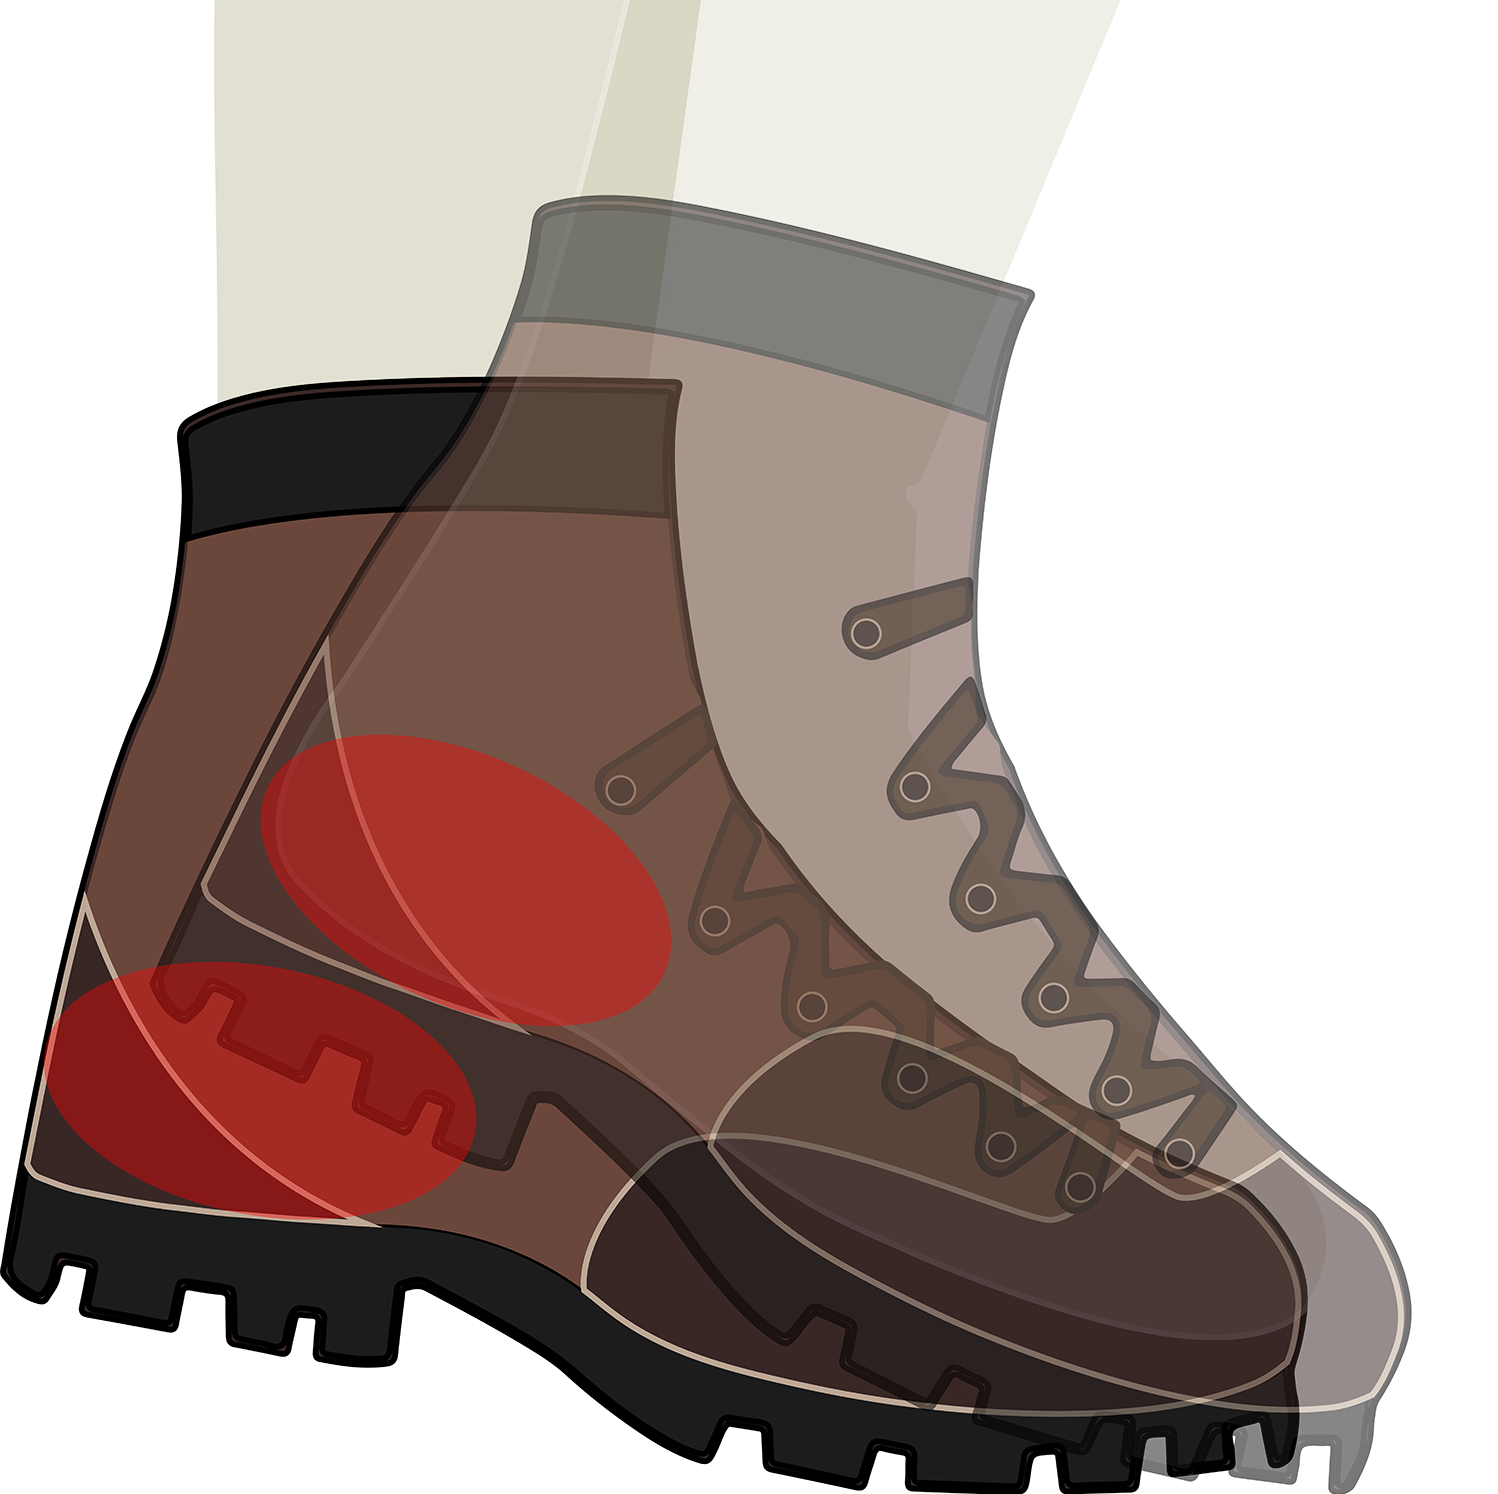 freeuse stock Adventure clipart boot. Hiking tread free on